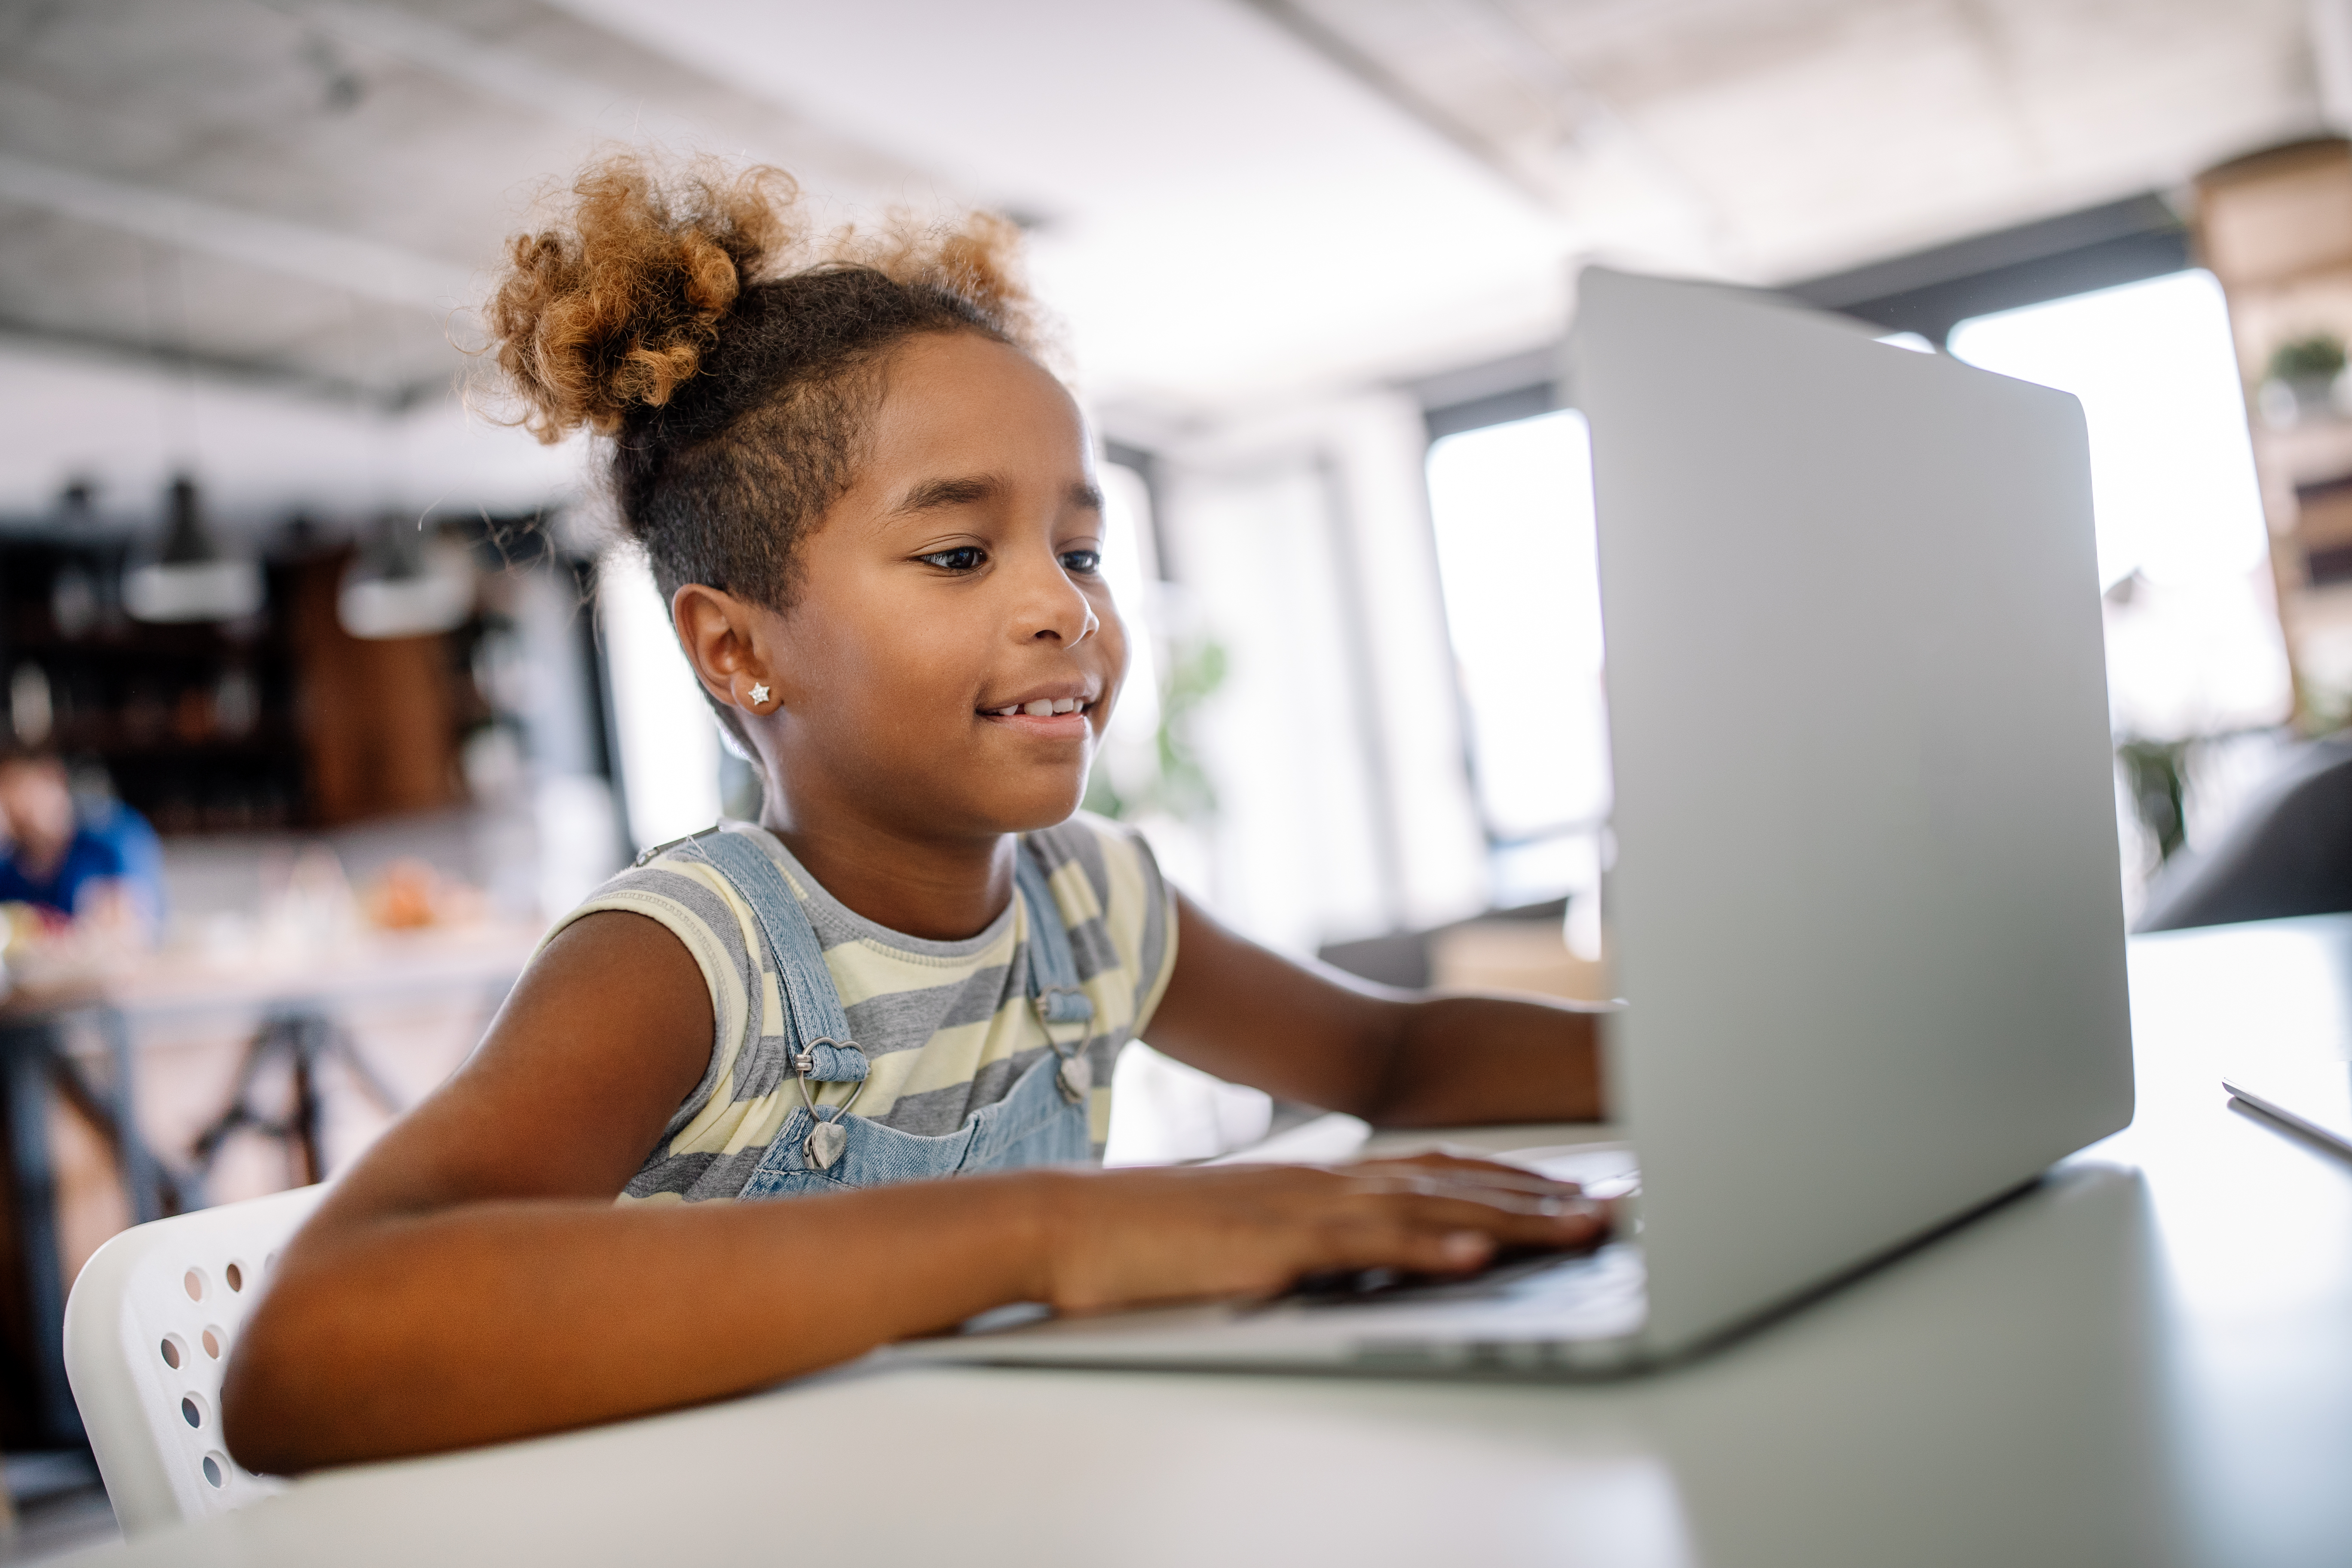 Little girl on laptop